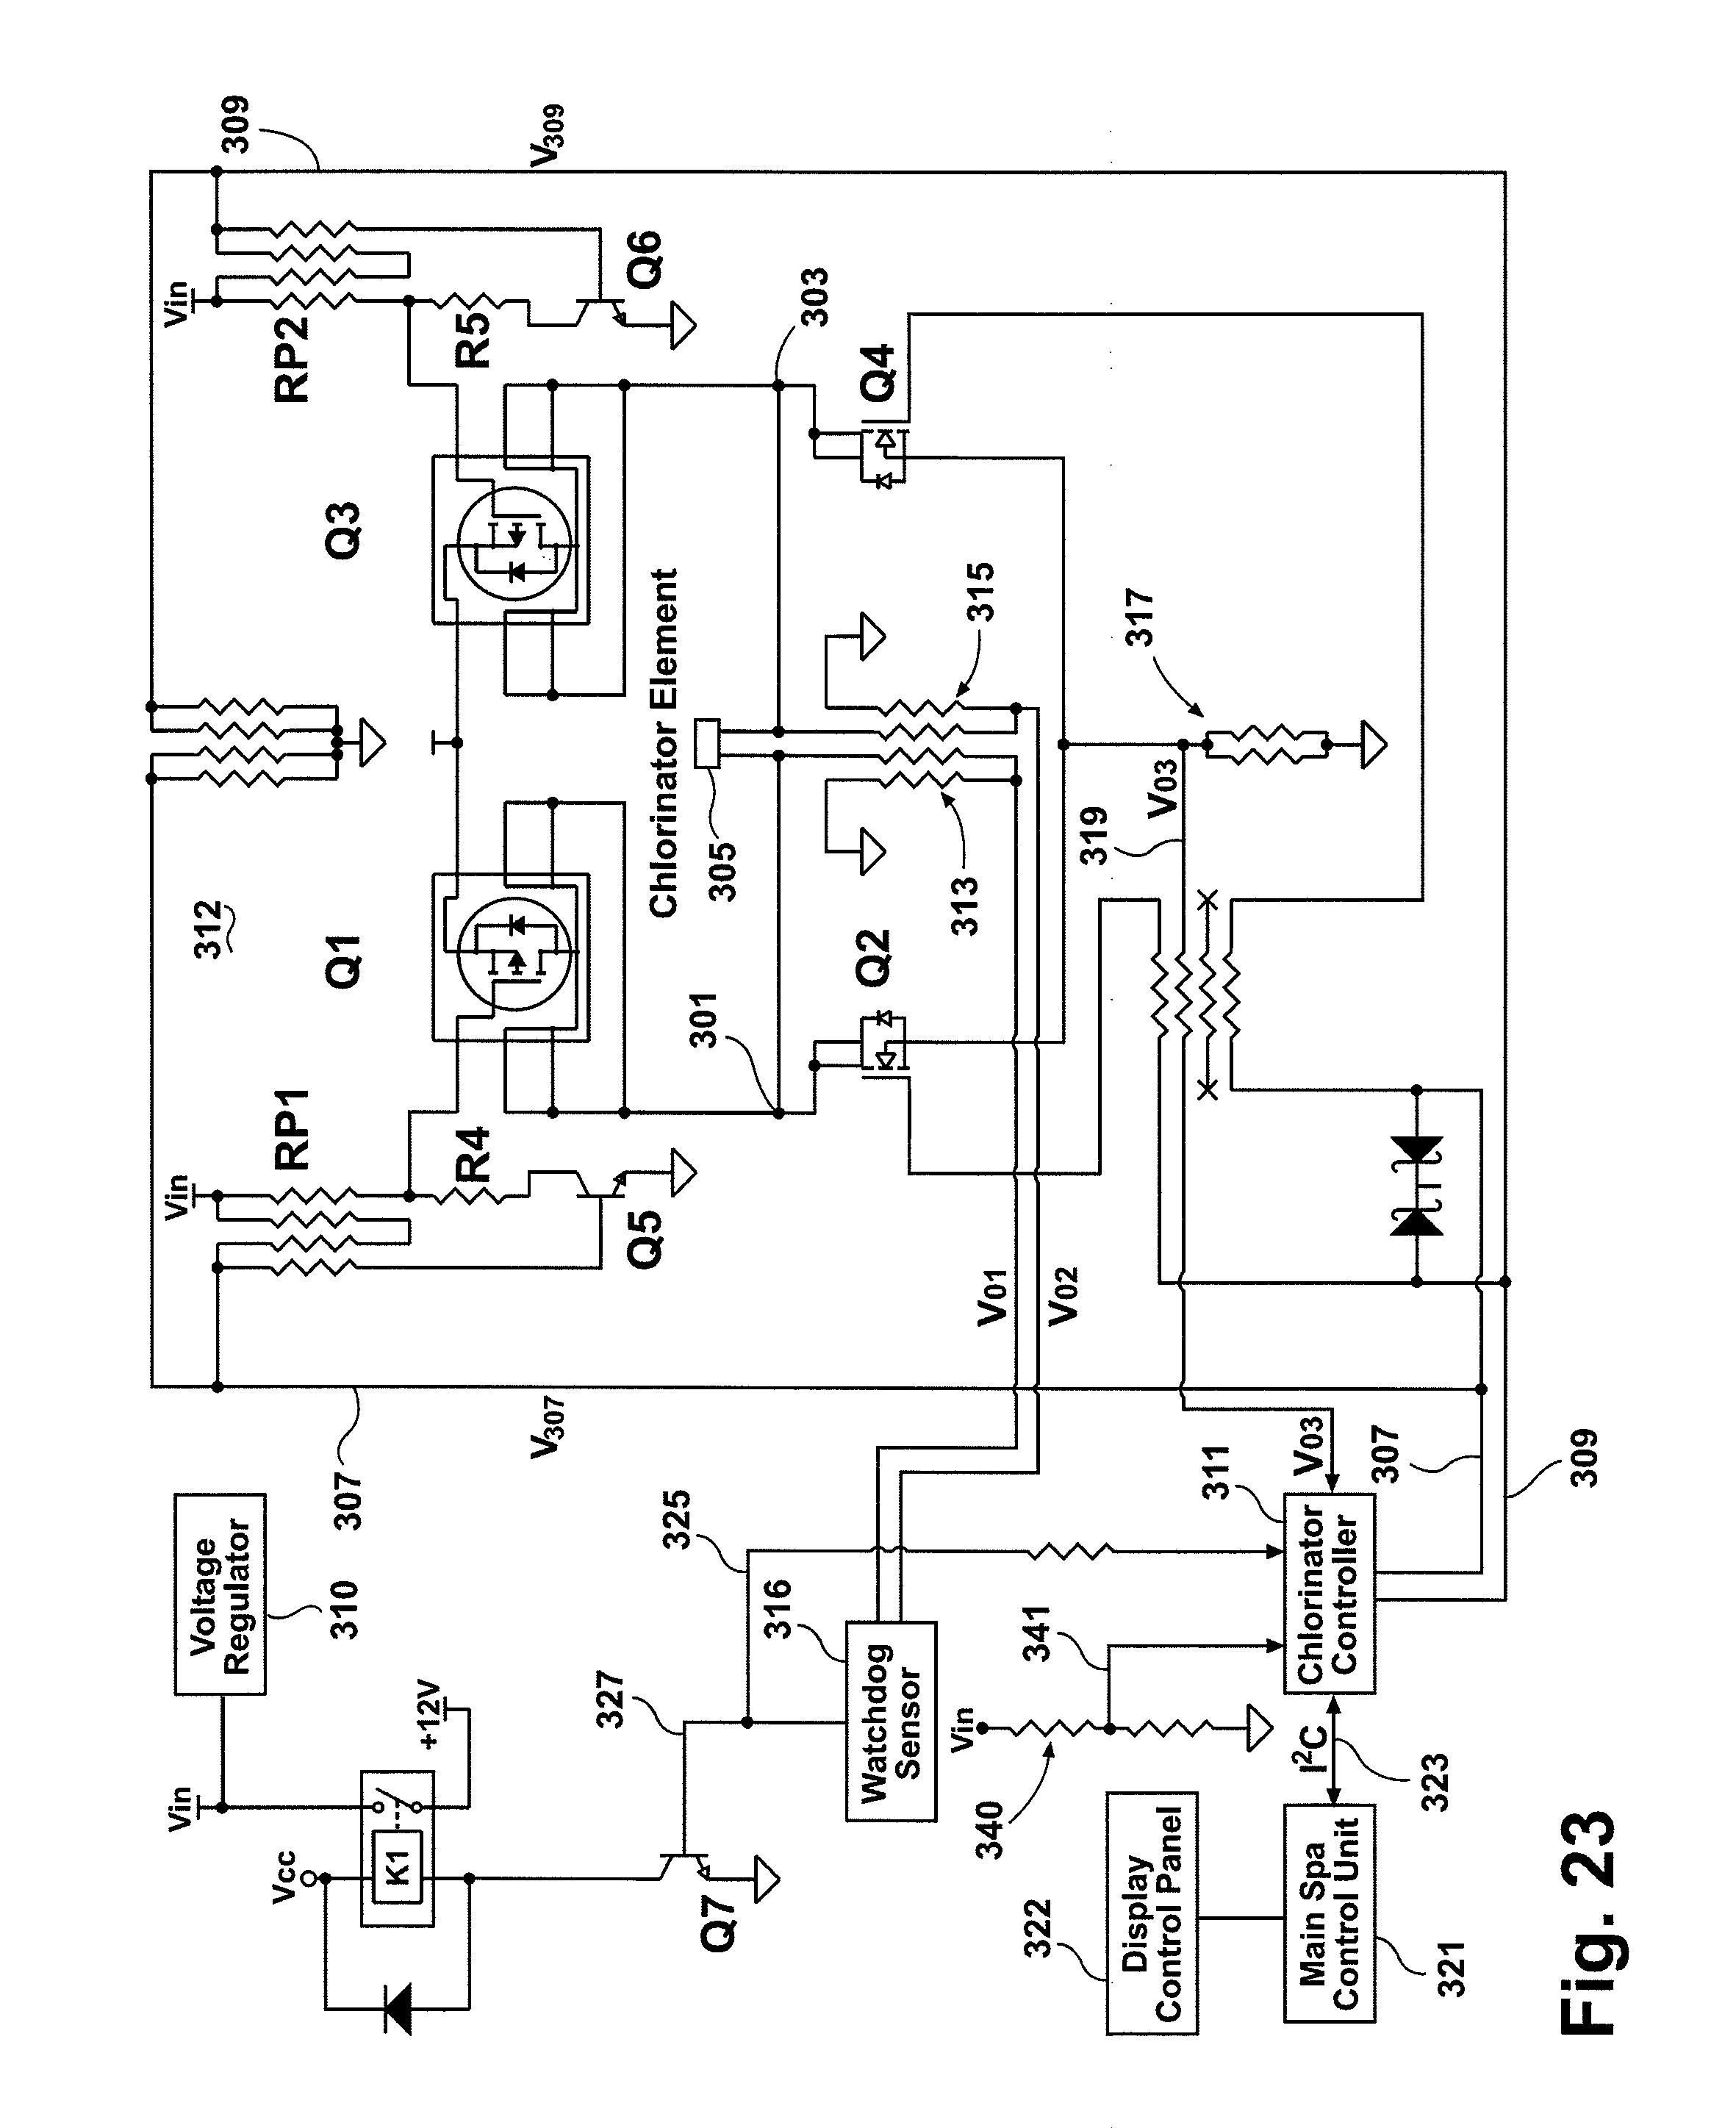 patent us8273254 - spa water sanitizing system